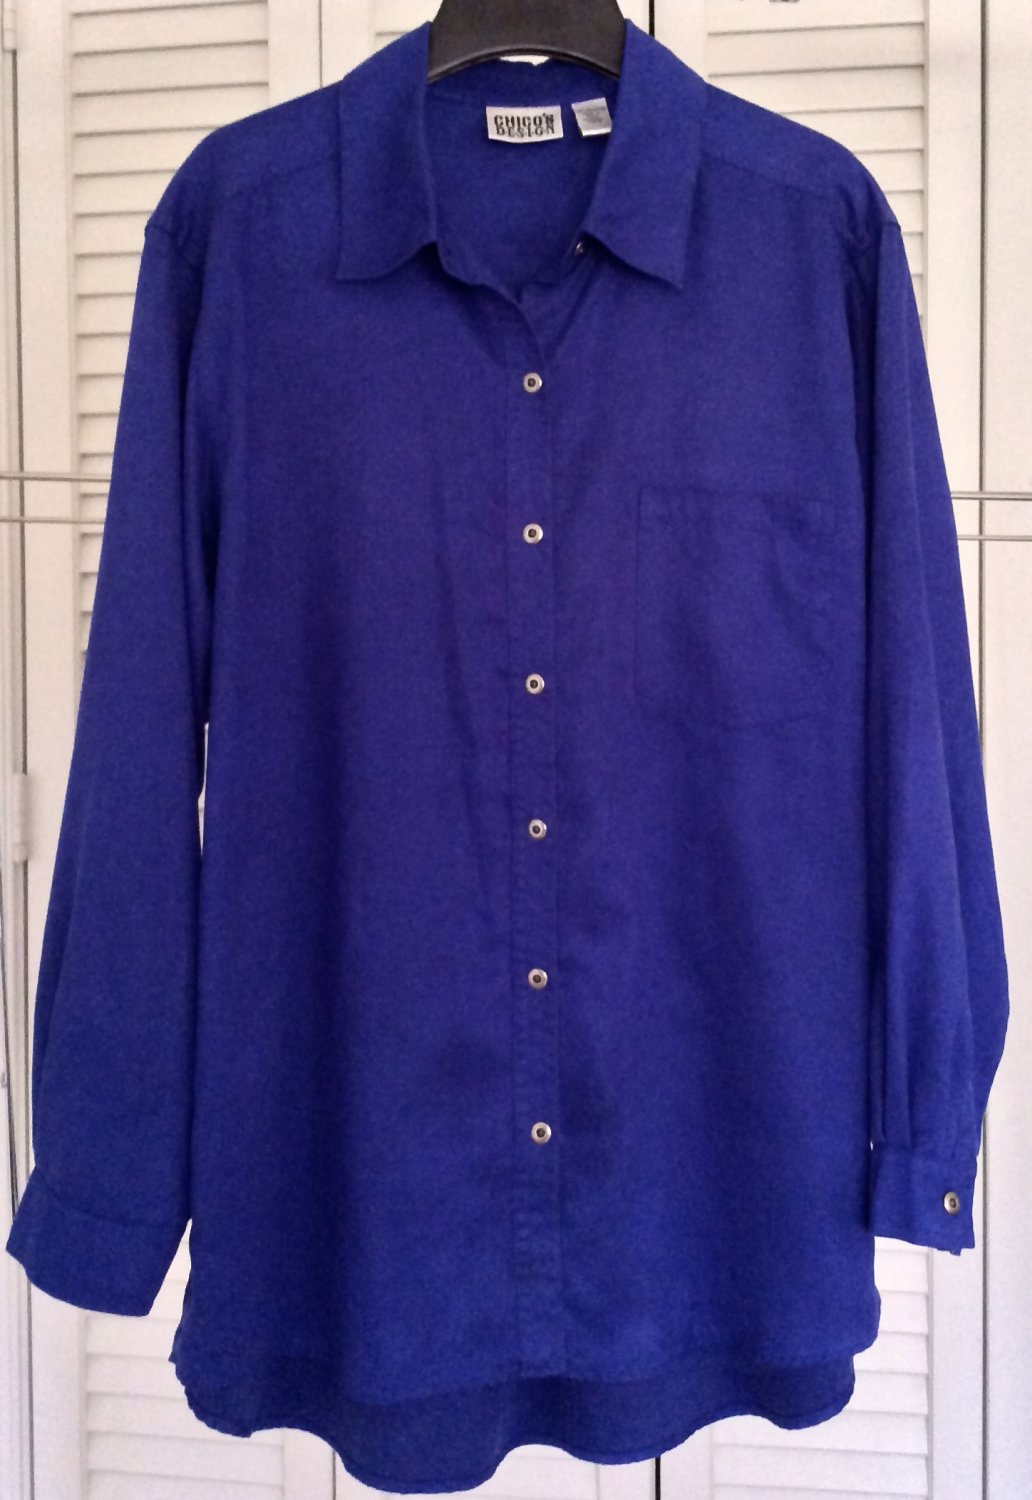 Chicos Ultrasuede Blouse Royal Blue Long Fit Top